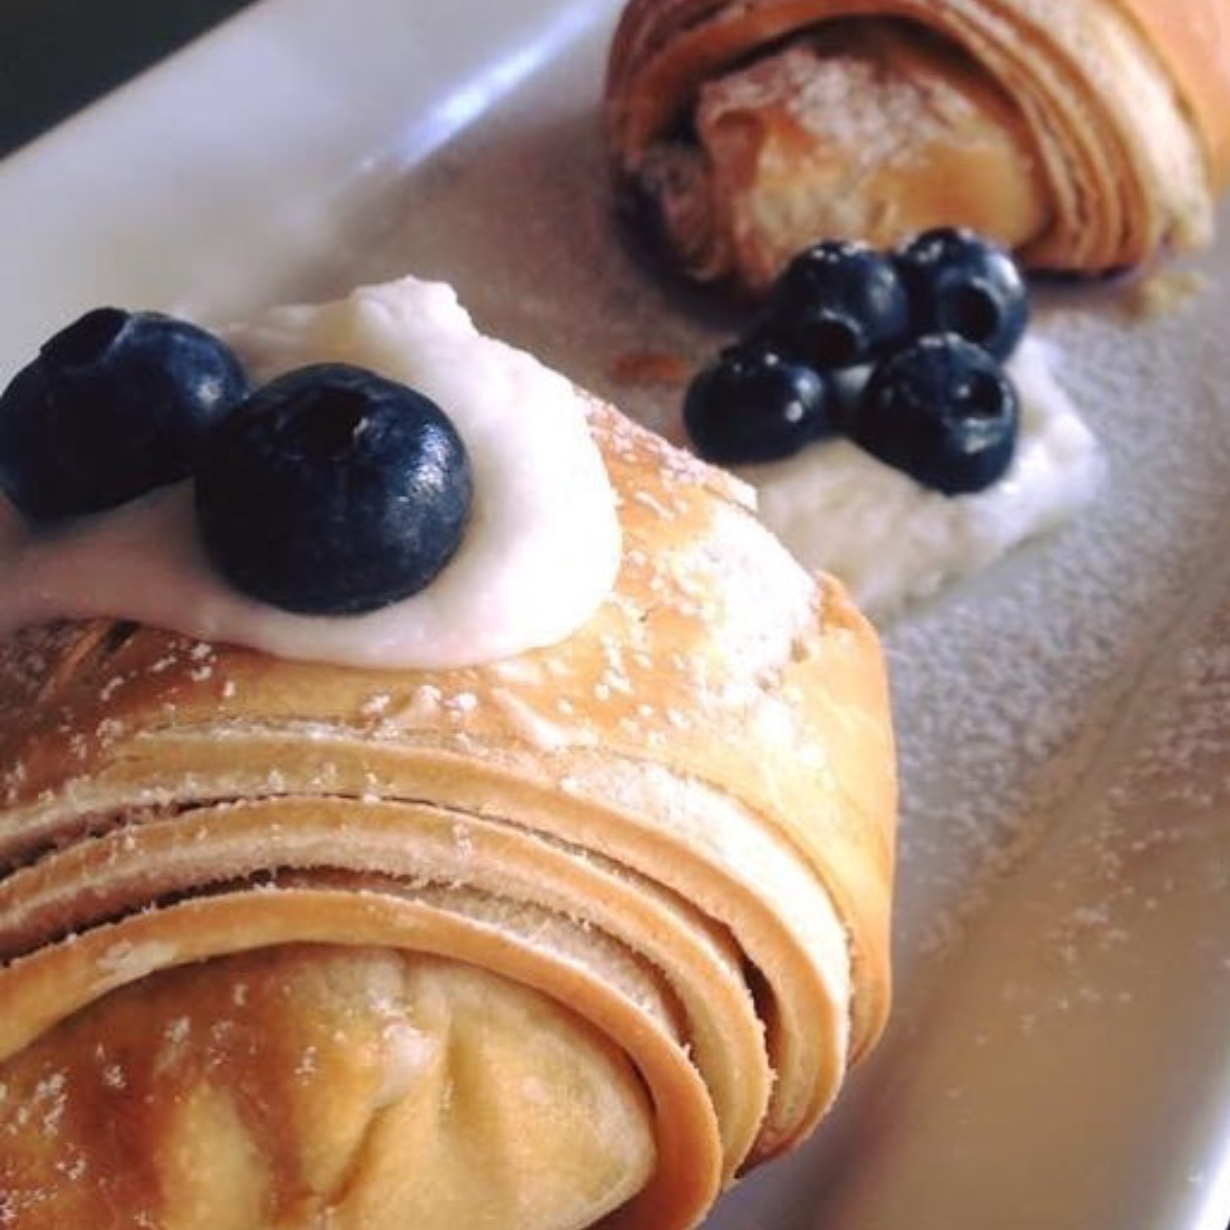 Blueberries & Cream Croissant